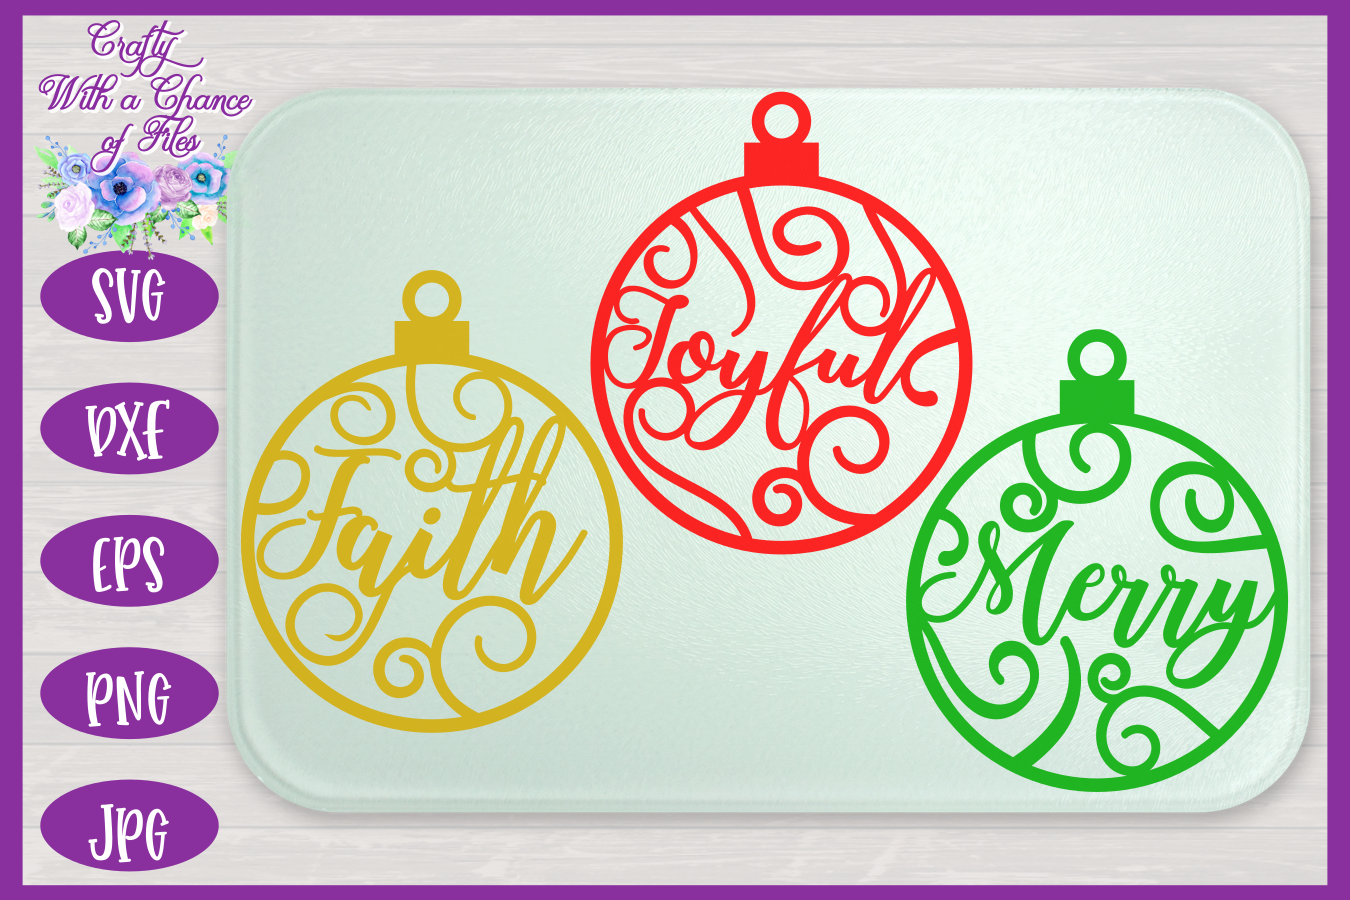 Christmas Word Ornaments SVG | Laser Cut Baubles SVG example image 3